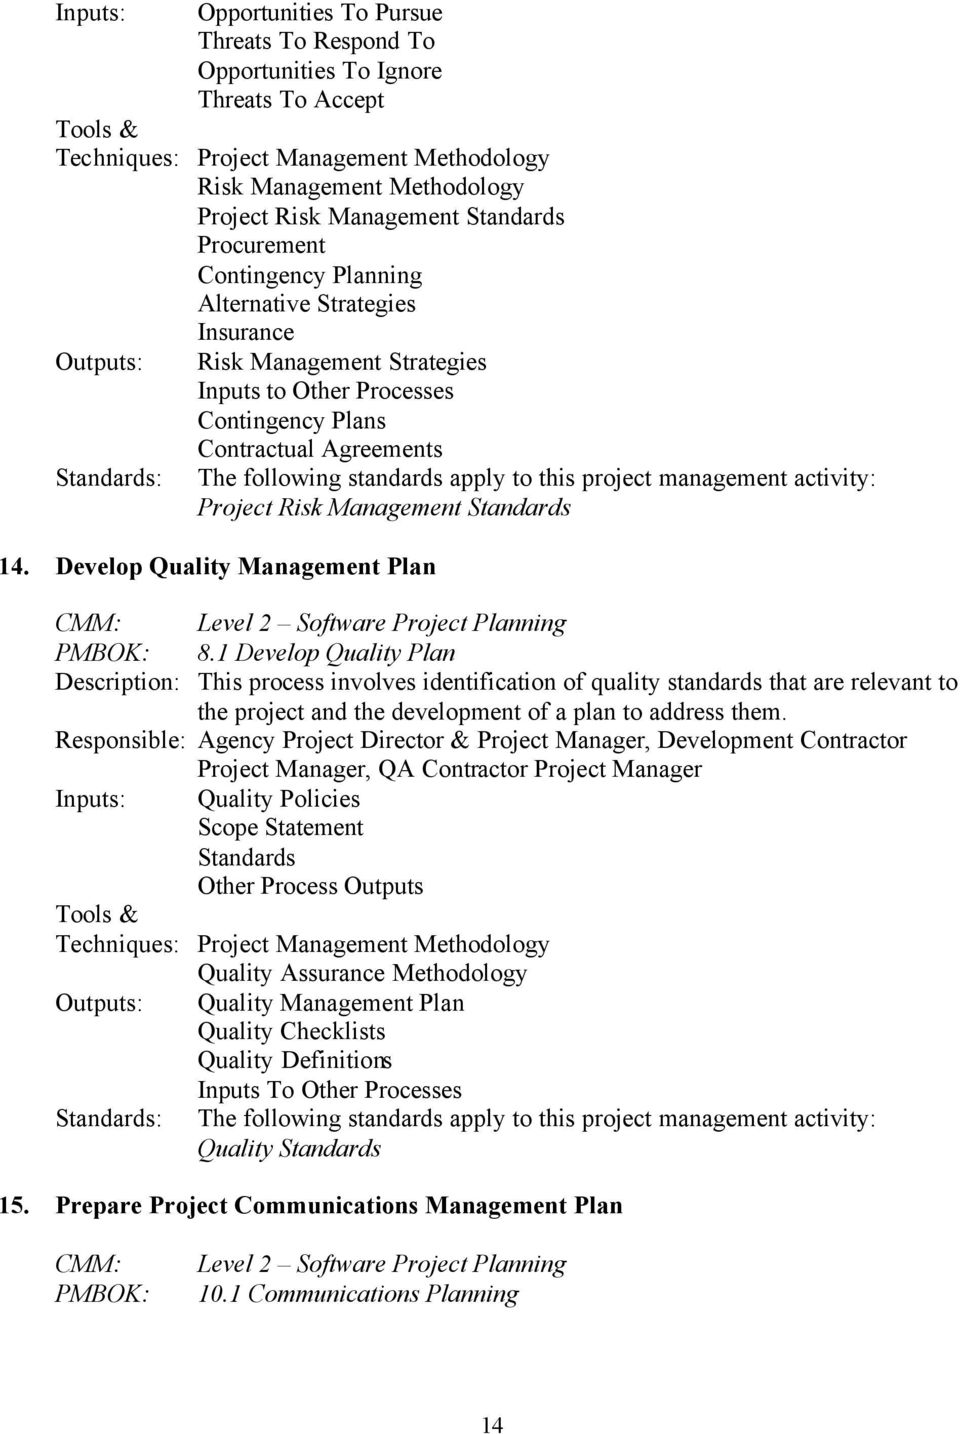 following standards apply to this project management activity: Project Risk Management Standards 14. Develop Quality Management Plan CMM: Level 2 Software Project Planning PMBOK: 8.